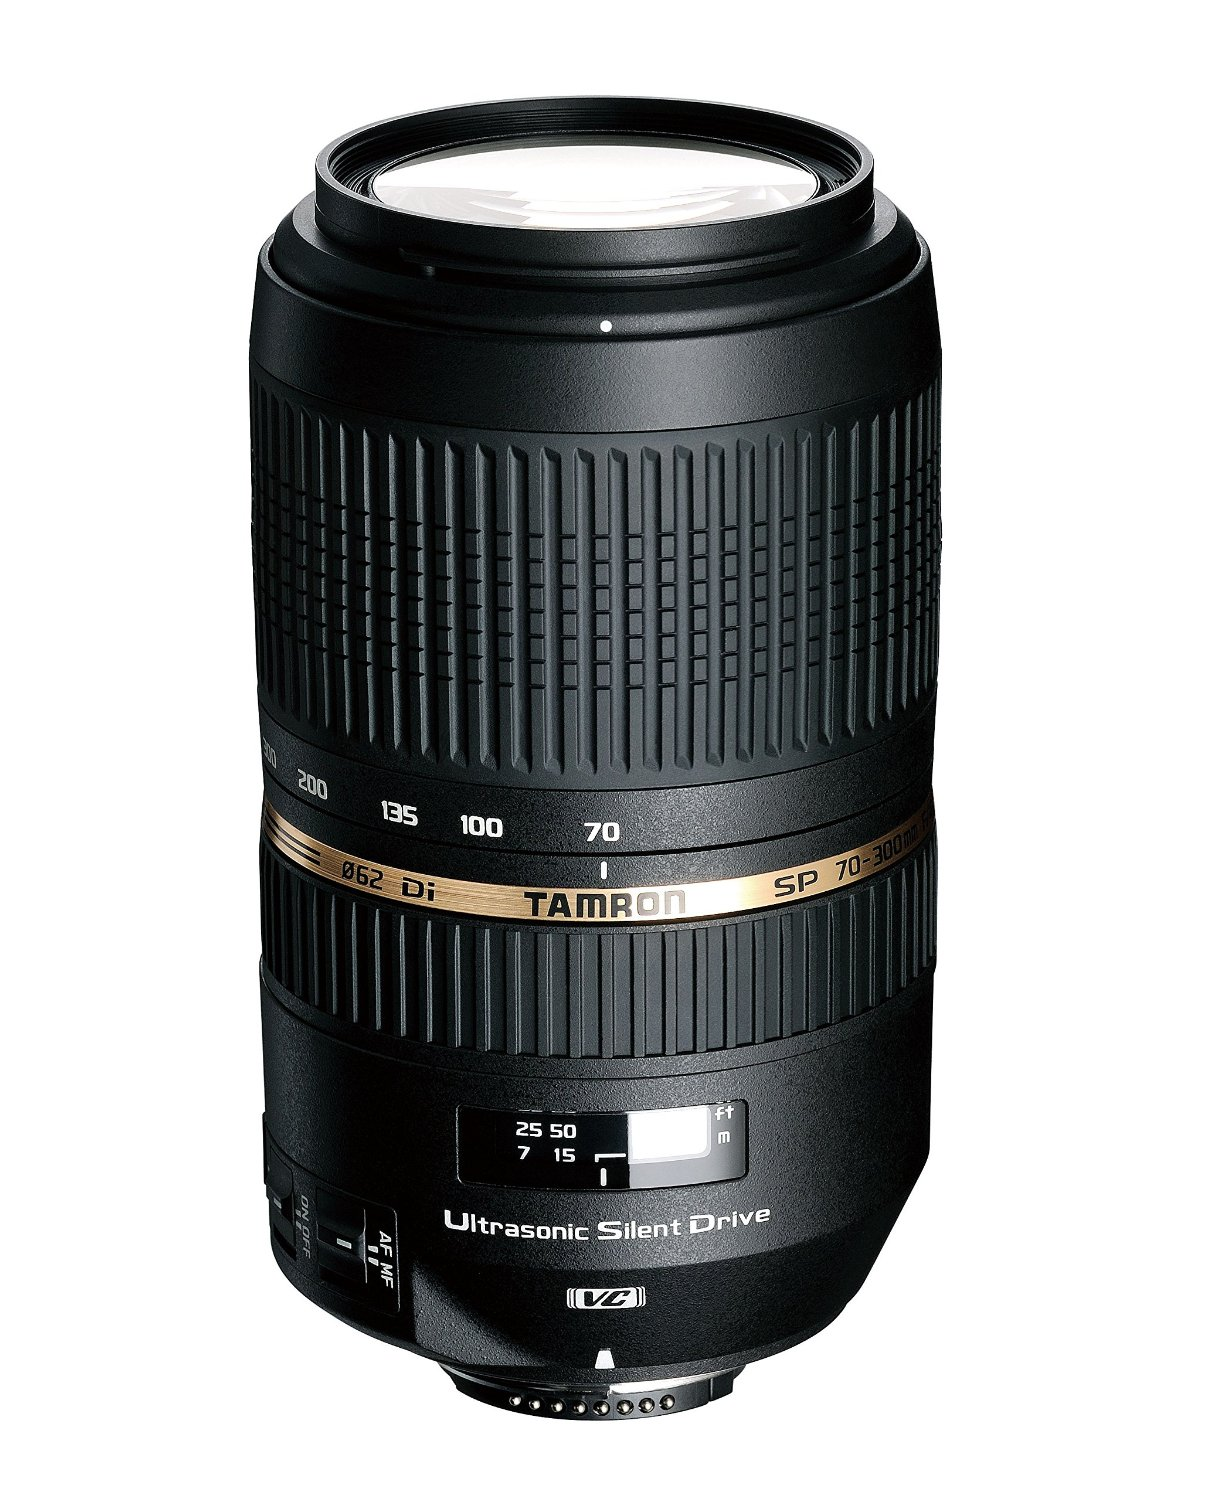 An Affordable Wildlife Lens Expat Journal Postcards From The Edge Sigma 70 300mm F 4 56 Dg Os For Nikon